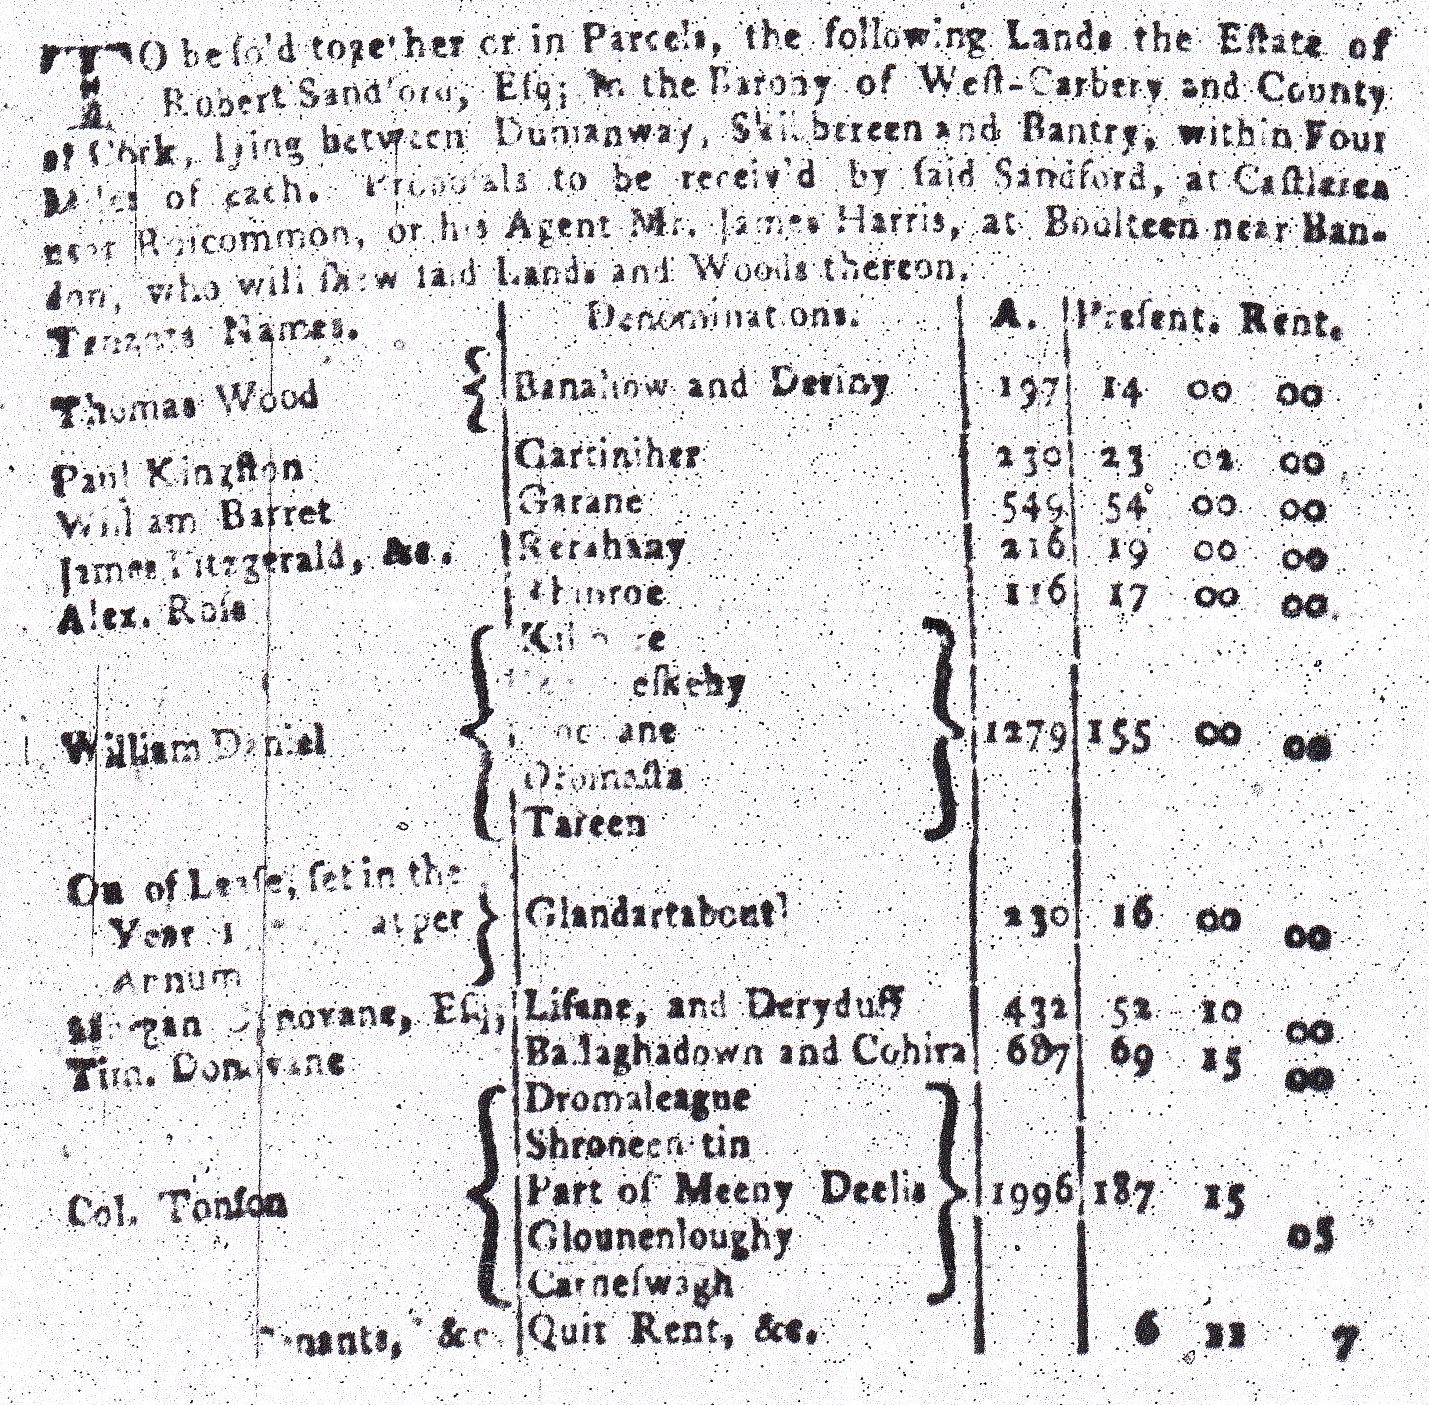 Dublin Journal 01 Nov 1748.jpg rent roll